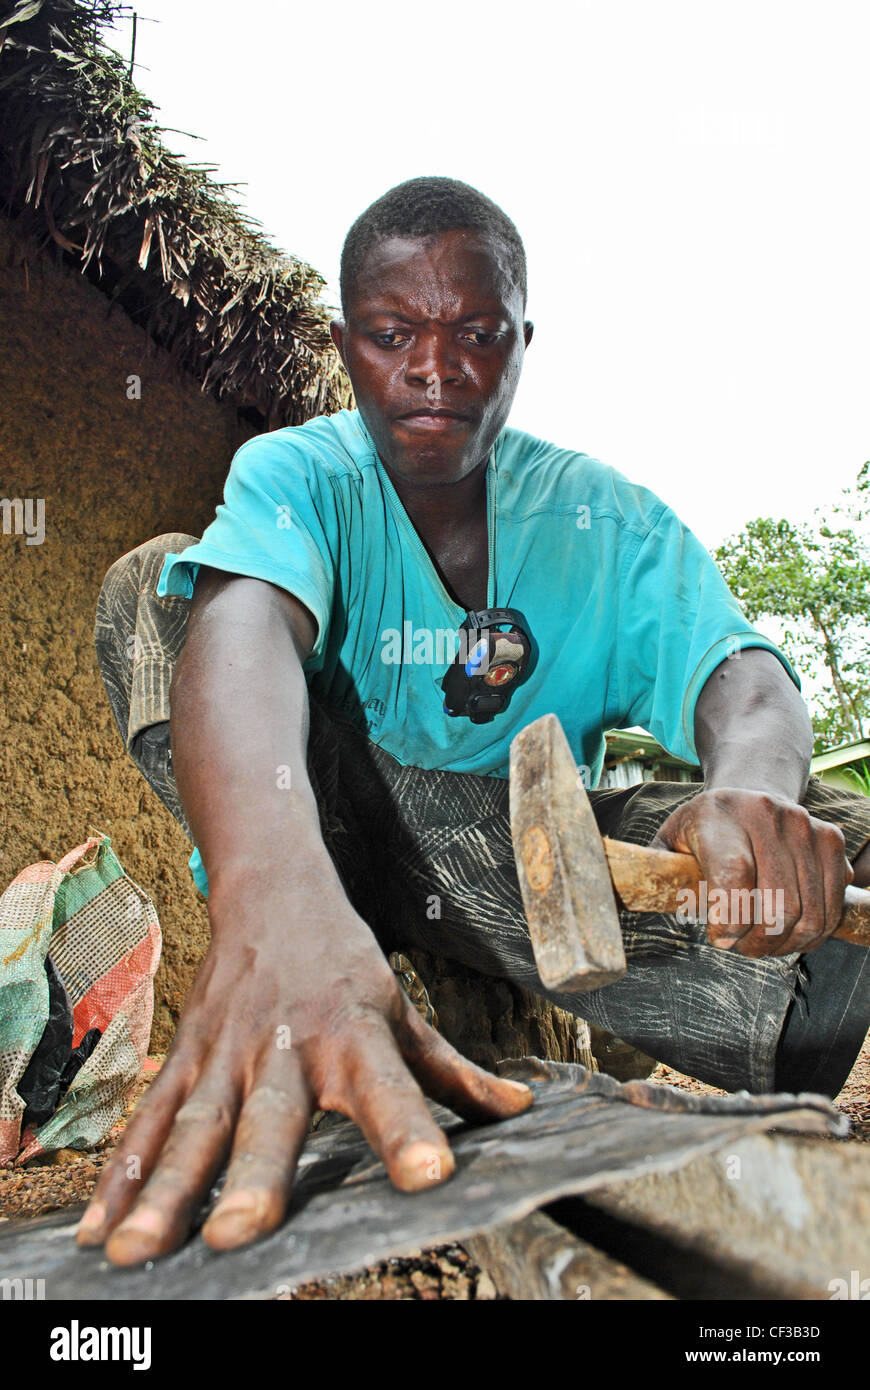 A tinsmith works with a hammer at his workshop in Bo, Sierra Leone Stock Photo